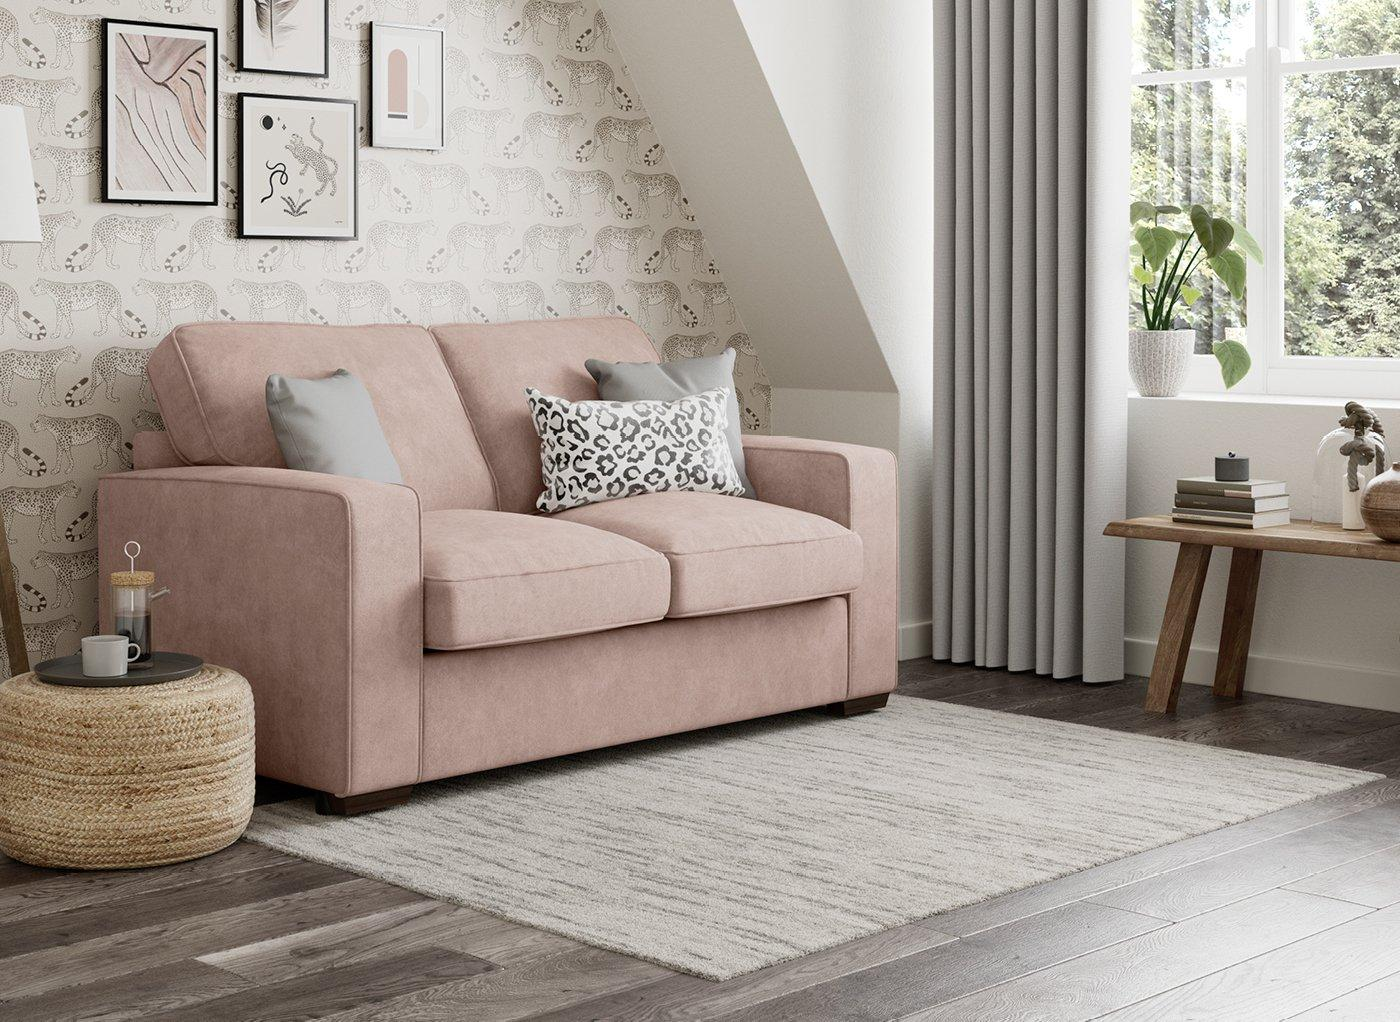 Odessa 3 Seater Sofa Bed Deluxe - Blush 3 Seater PINK